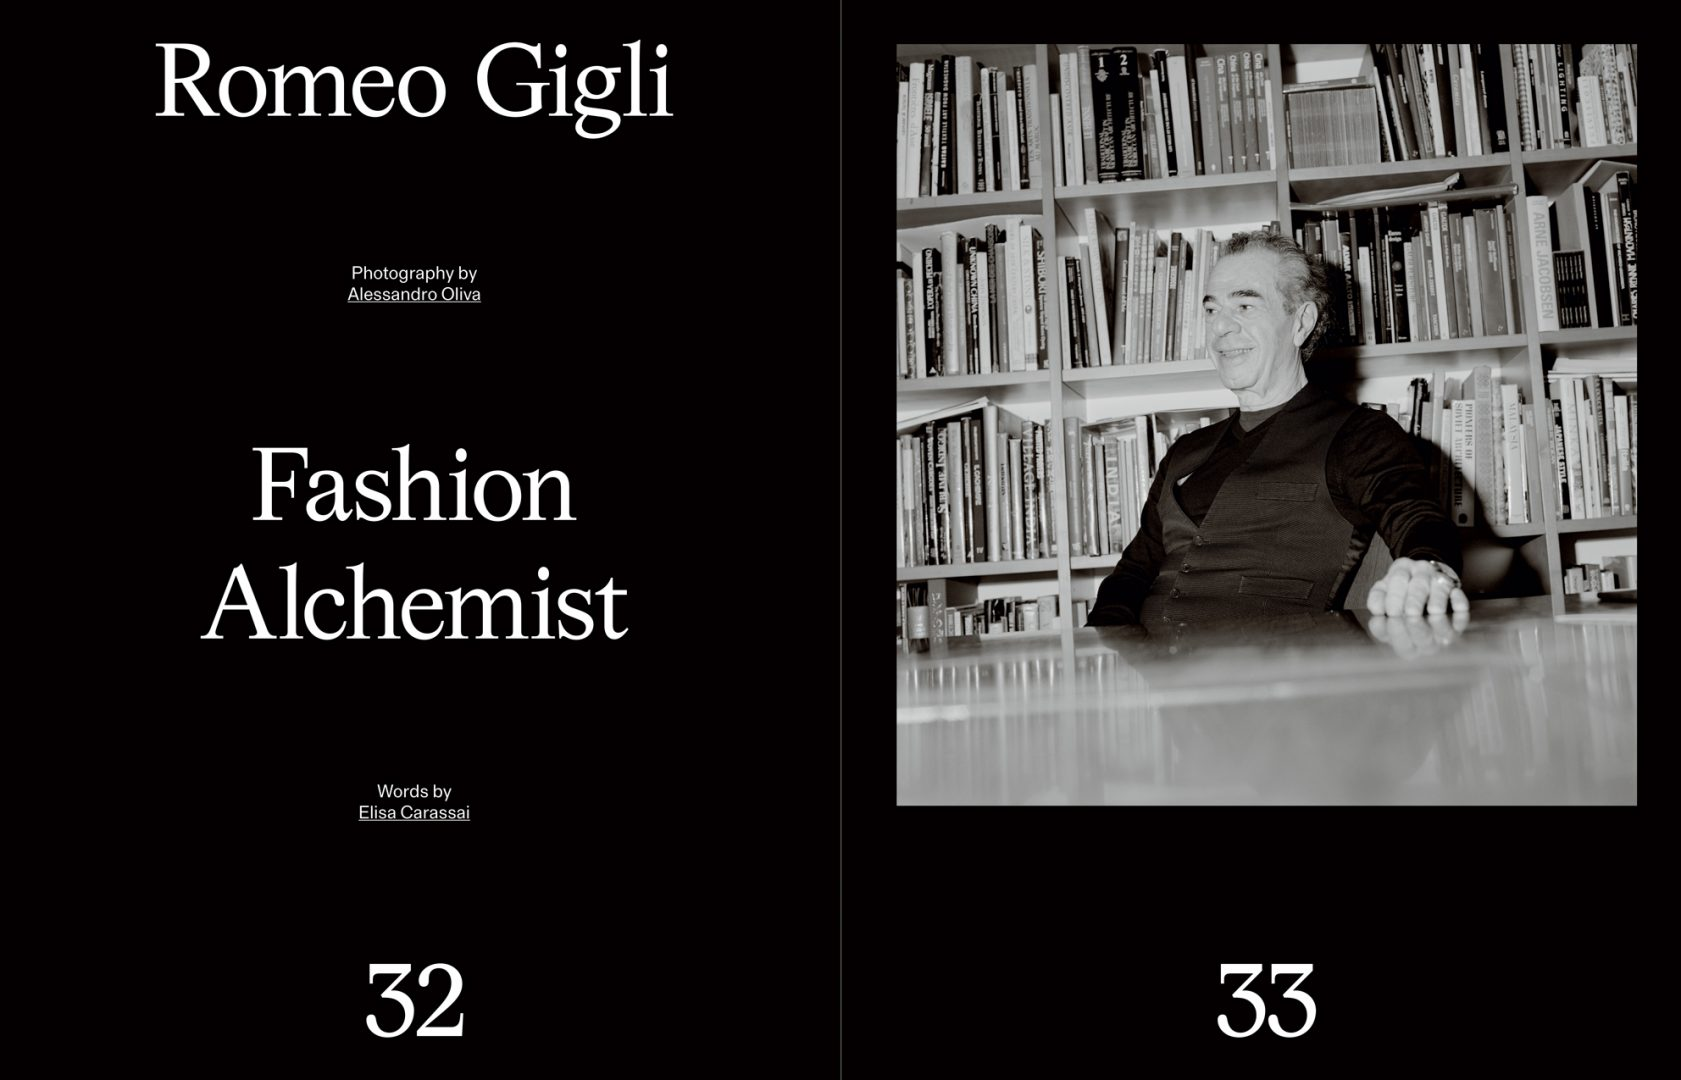 Sali e Tabacchi Journal, Romeo Gigli, Photographed by Alessandro Oliva